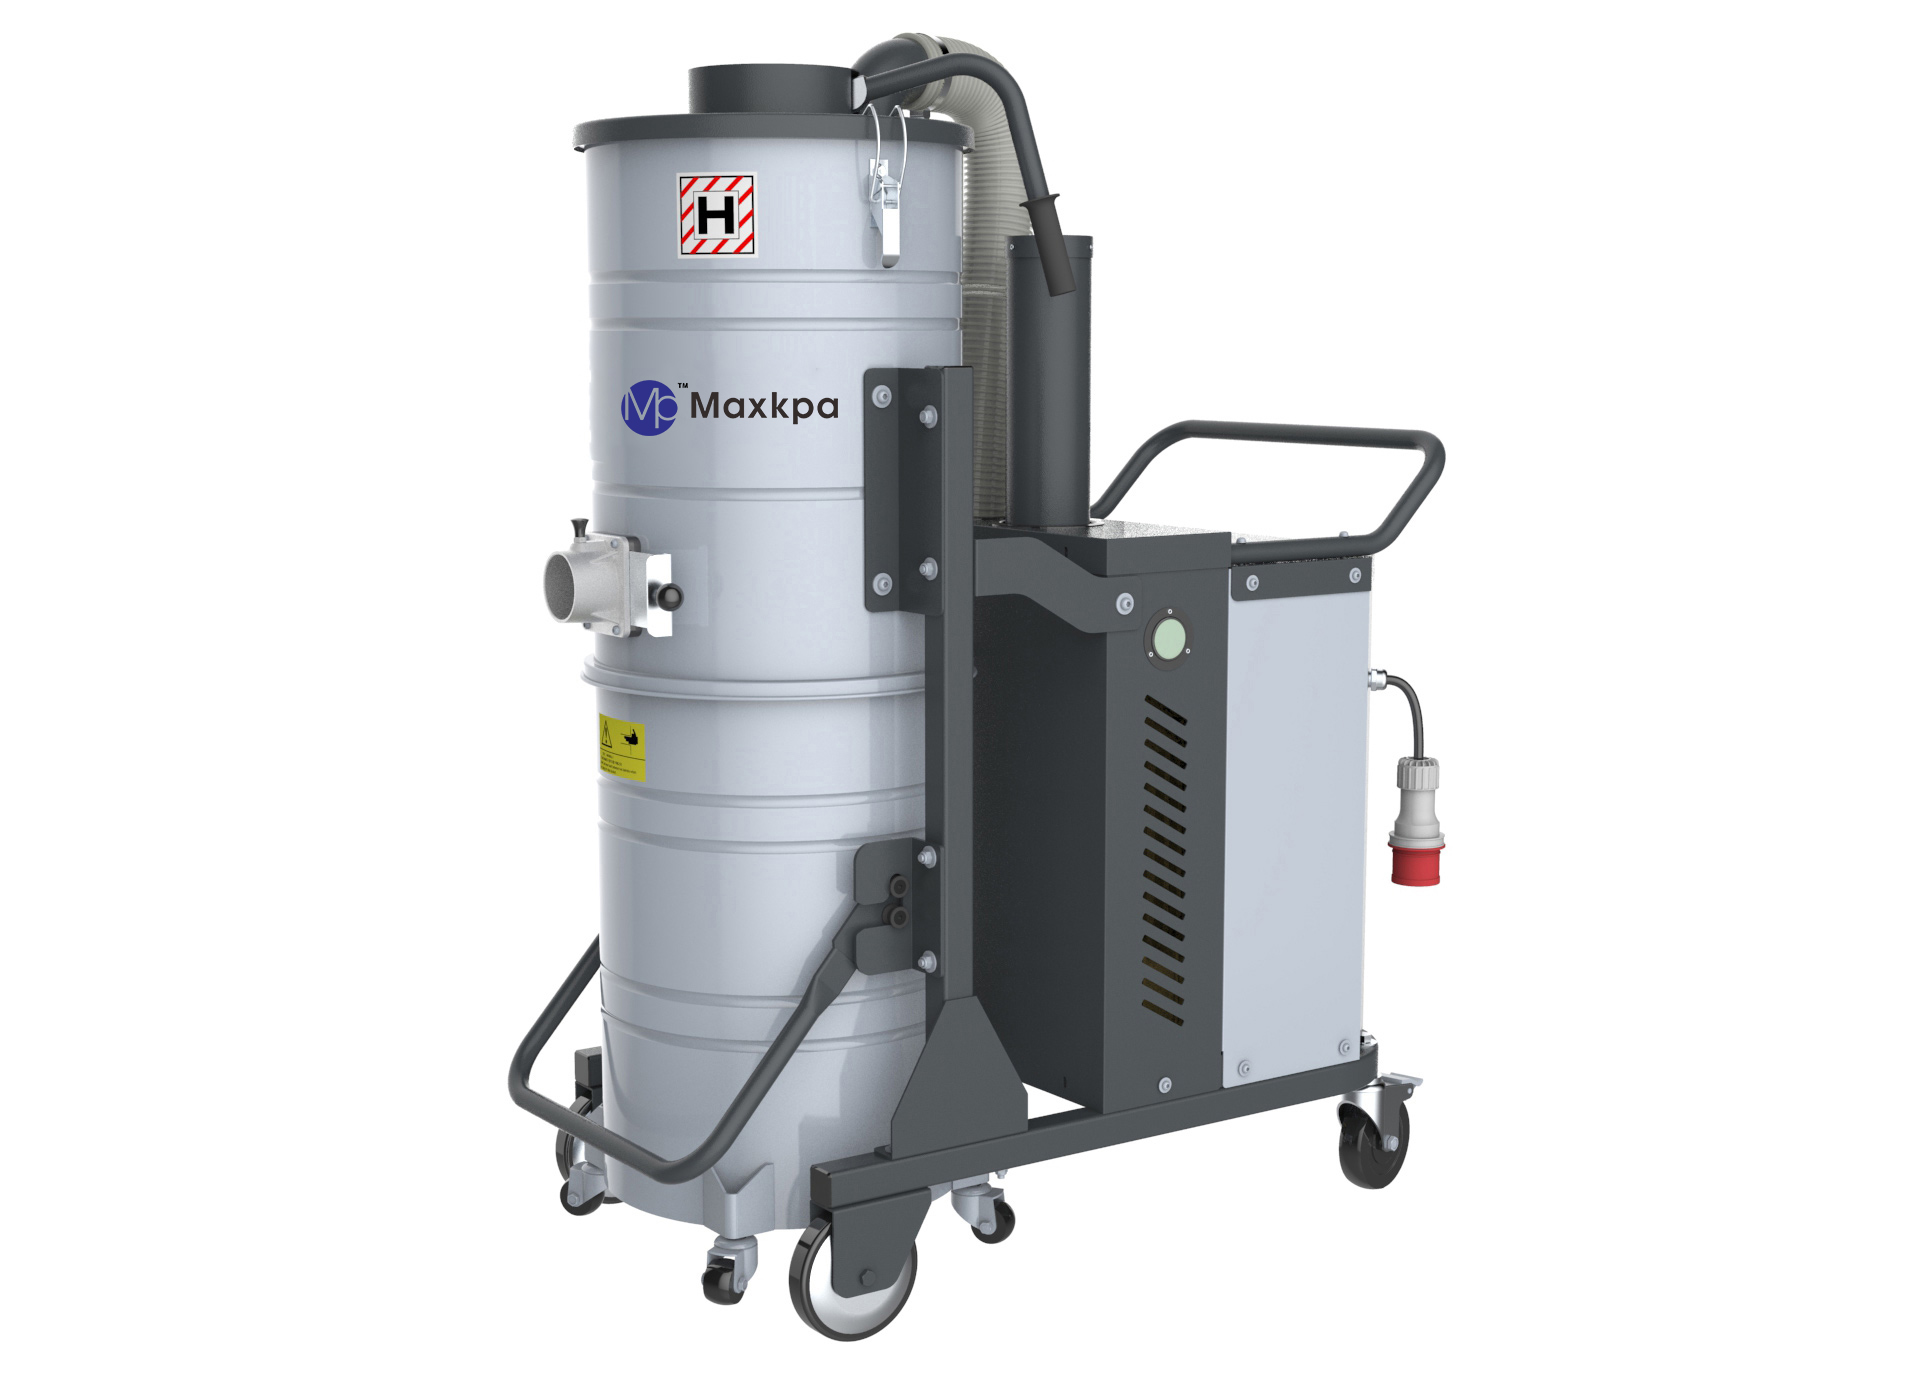 wet and dry industrial vacuum